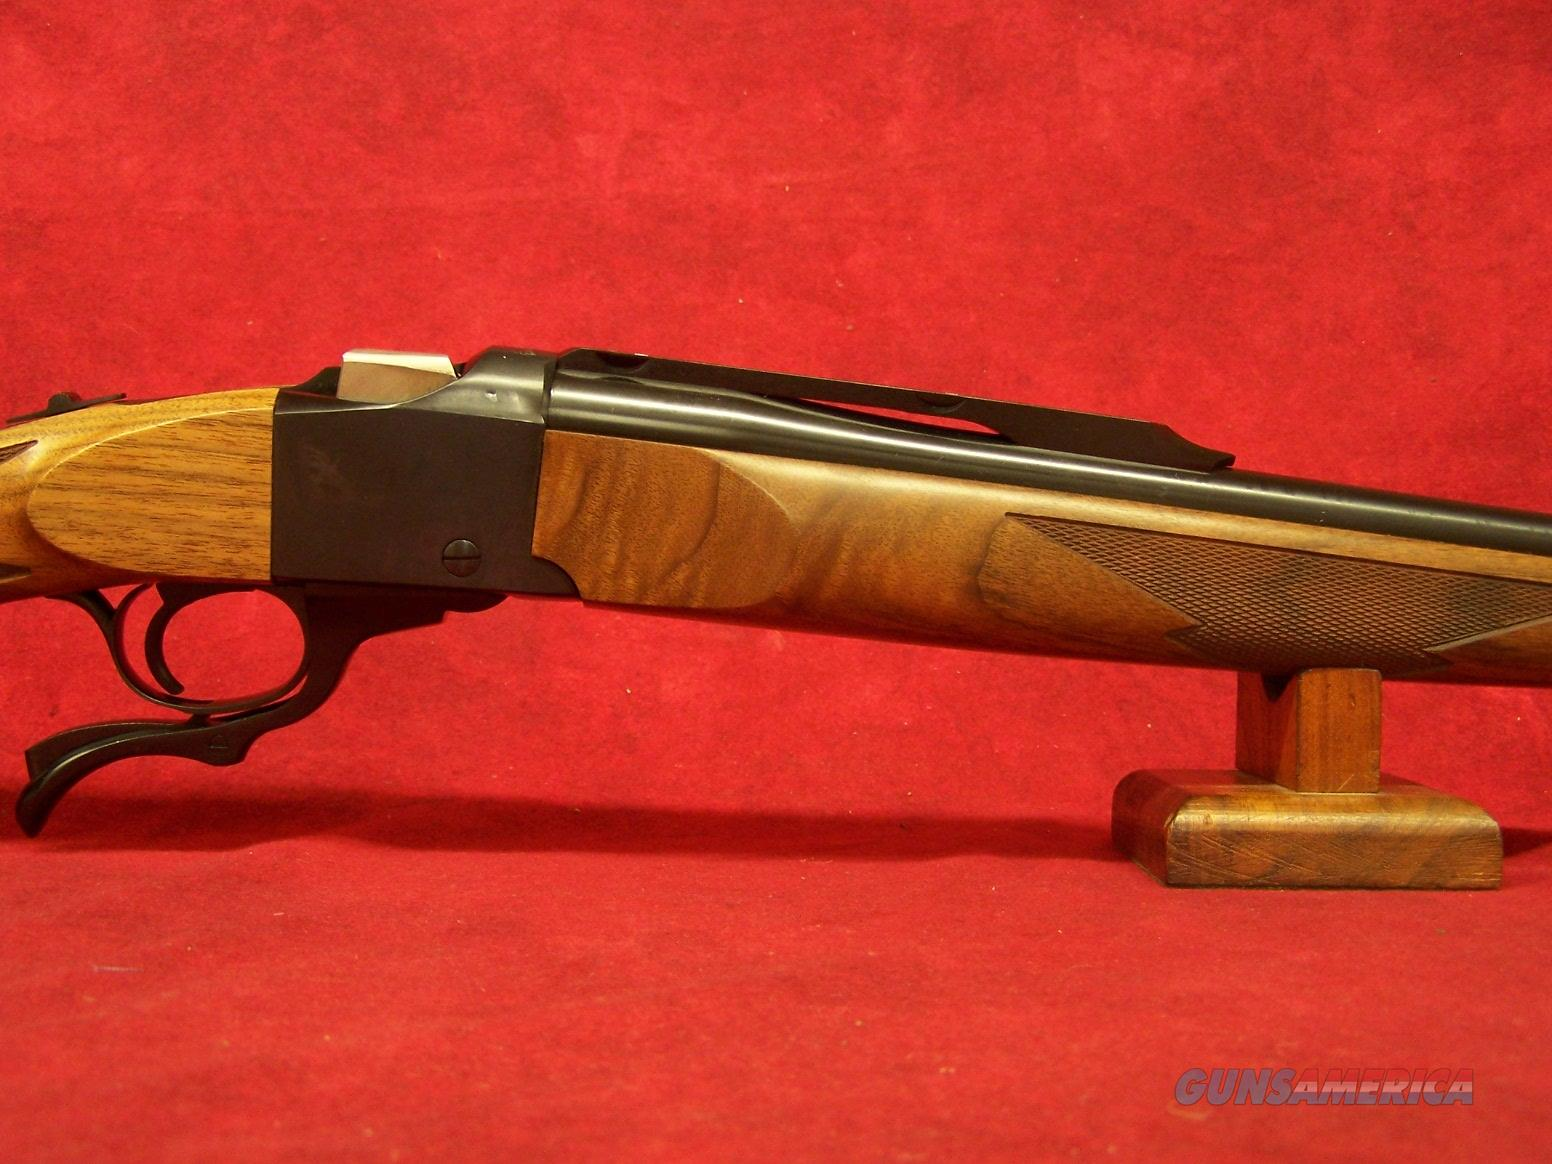 "RUGER NO. 1B SPORTER 6.5 CREEDMOOR  BLUE/WOOD 28"" LIPSEY'S EXCLUSIVE (11397)  Guns > Rifles > Ruger Rifles > #1 Type"